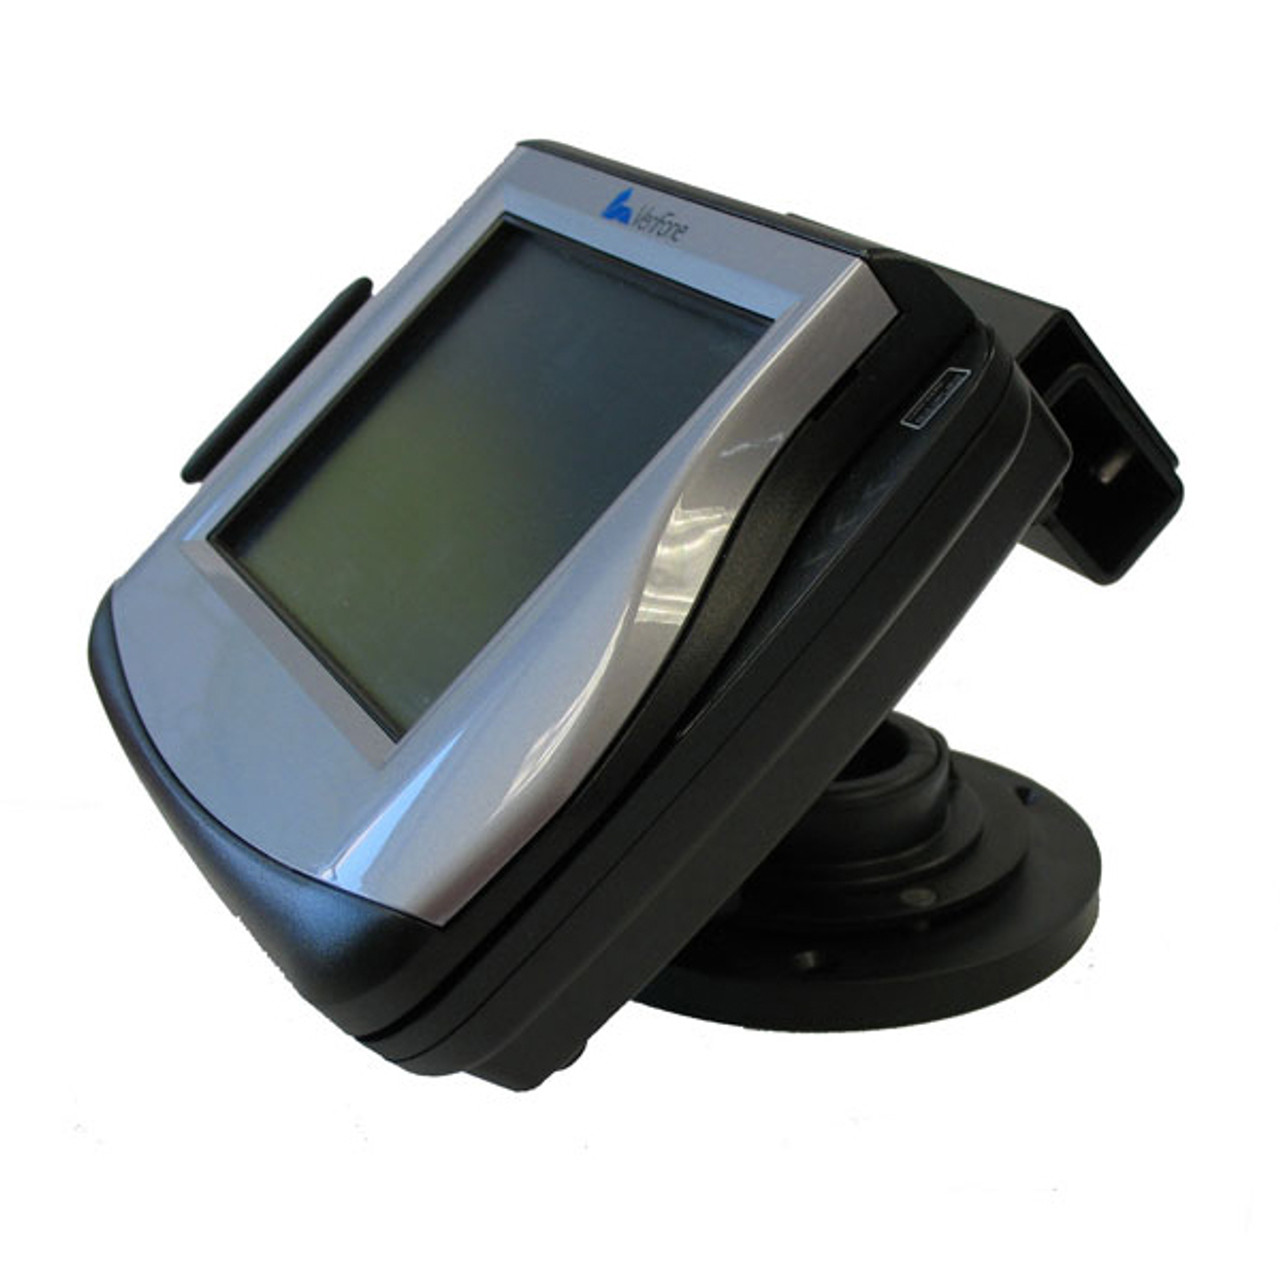 Swivel Stands Credit Card Stand Locking Low Profile VeriFone MX860